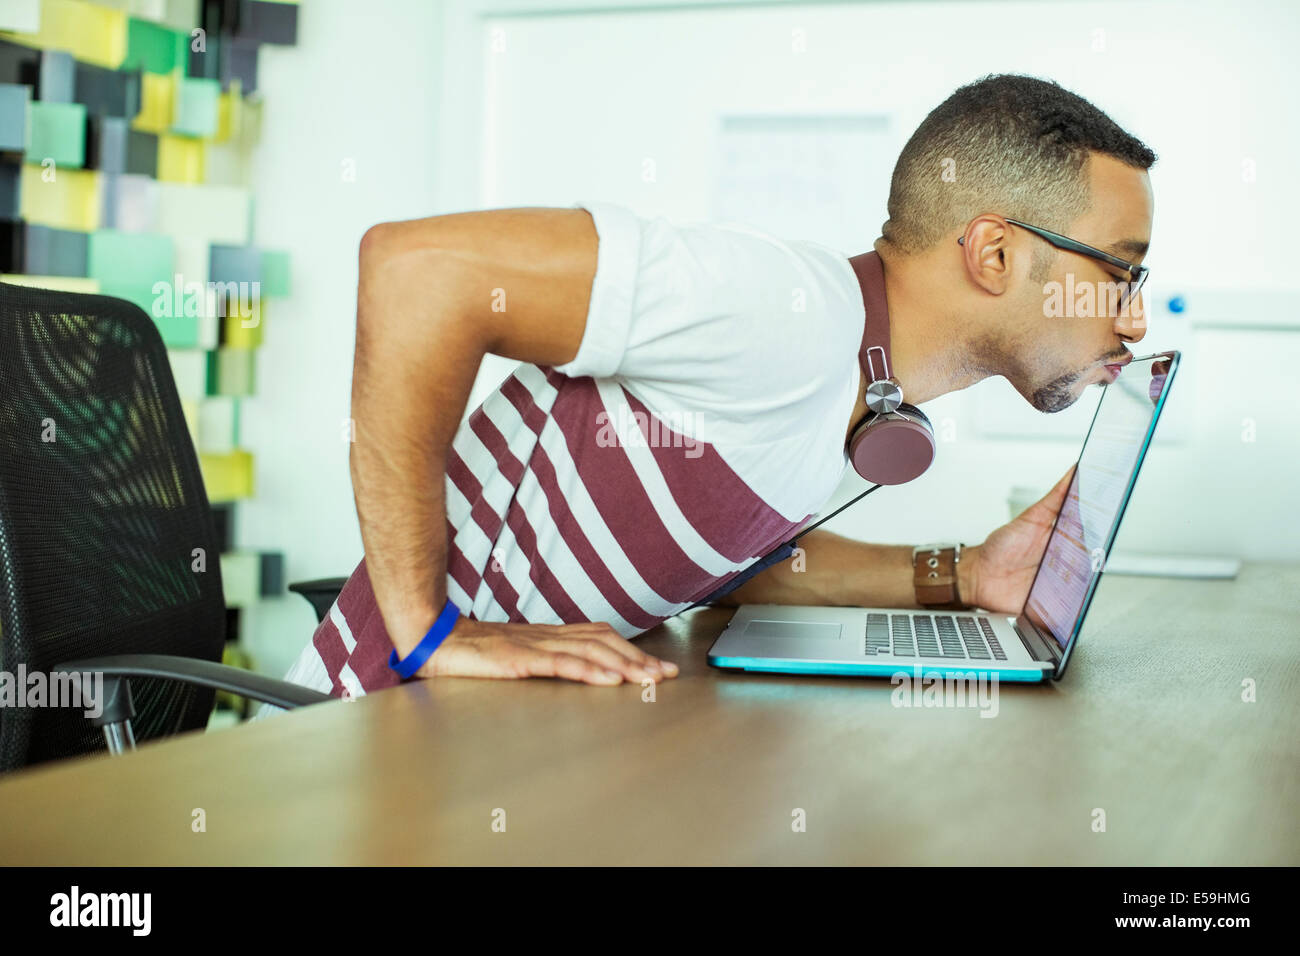 Man kissing laptop in office Photo Stock